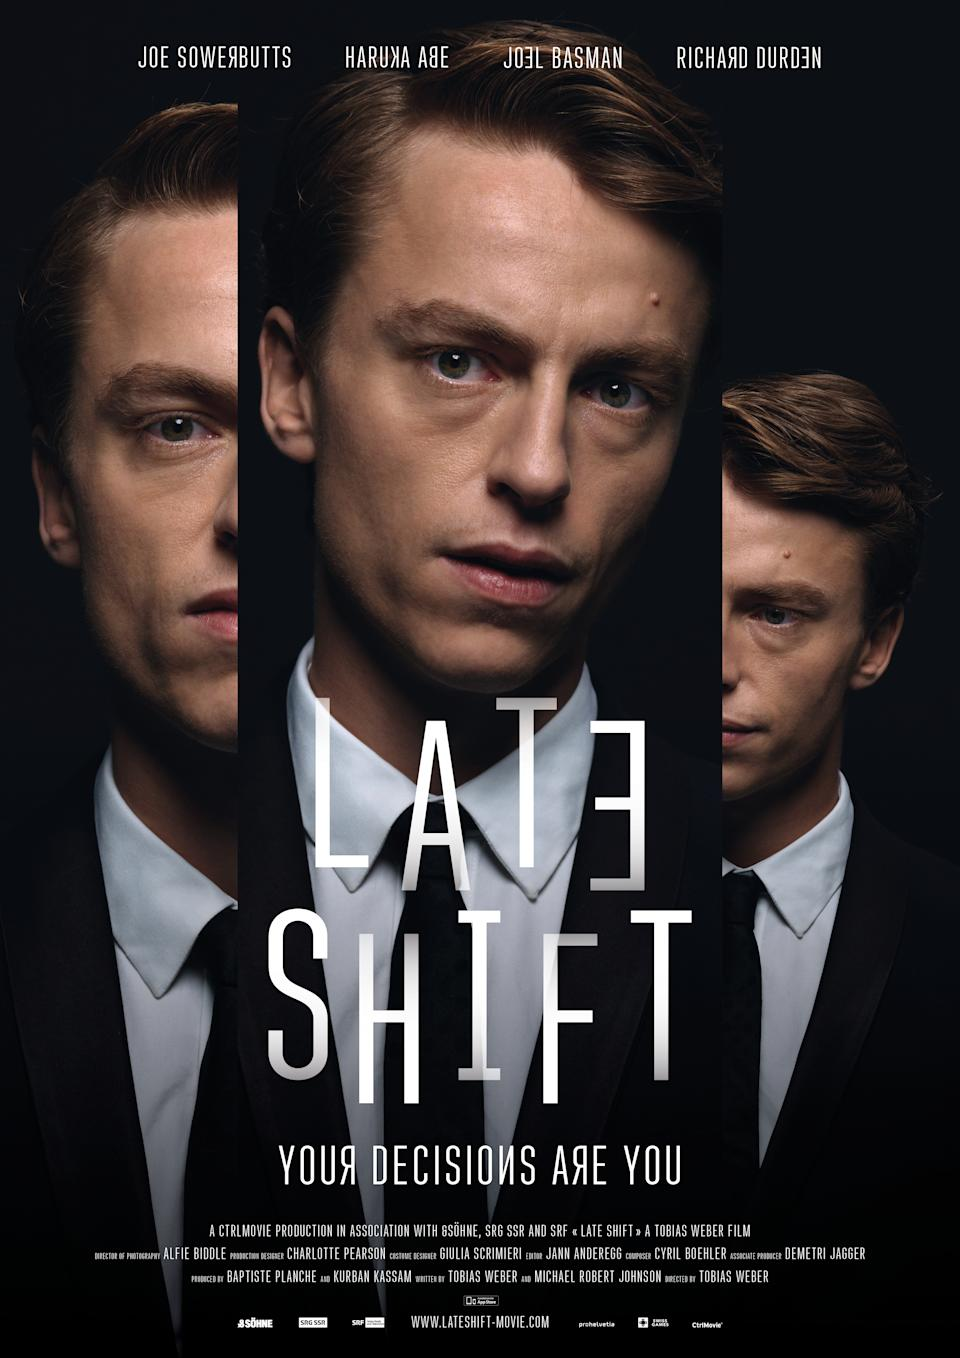 Late Shift, an interactive movie by CtrlMovie.